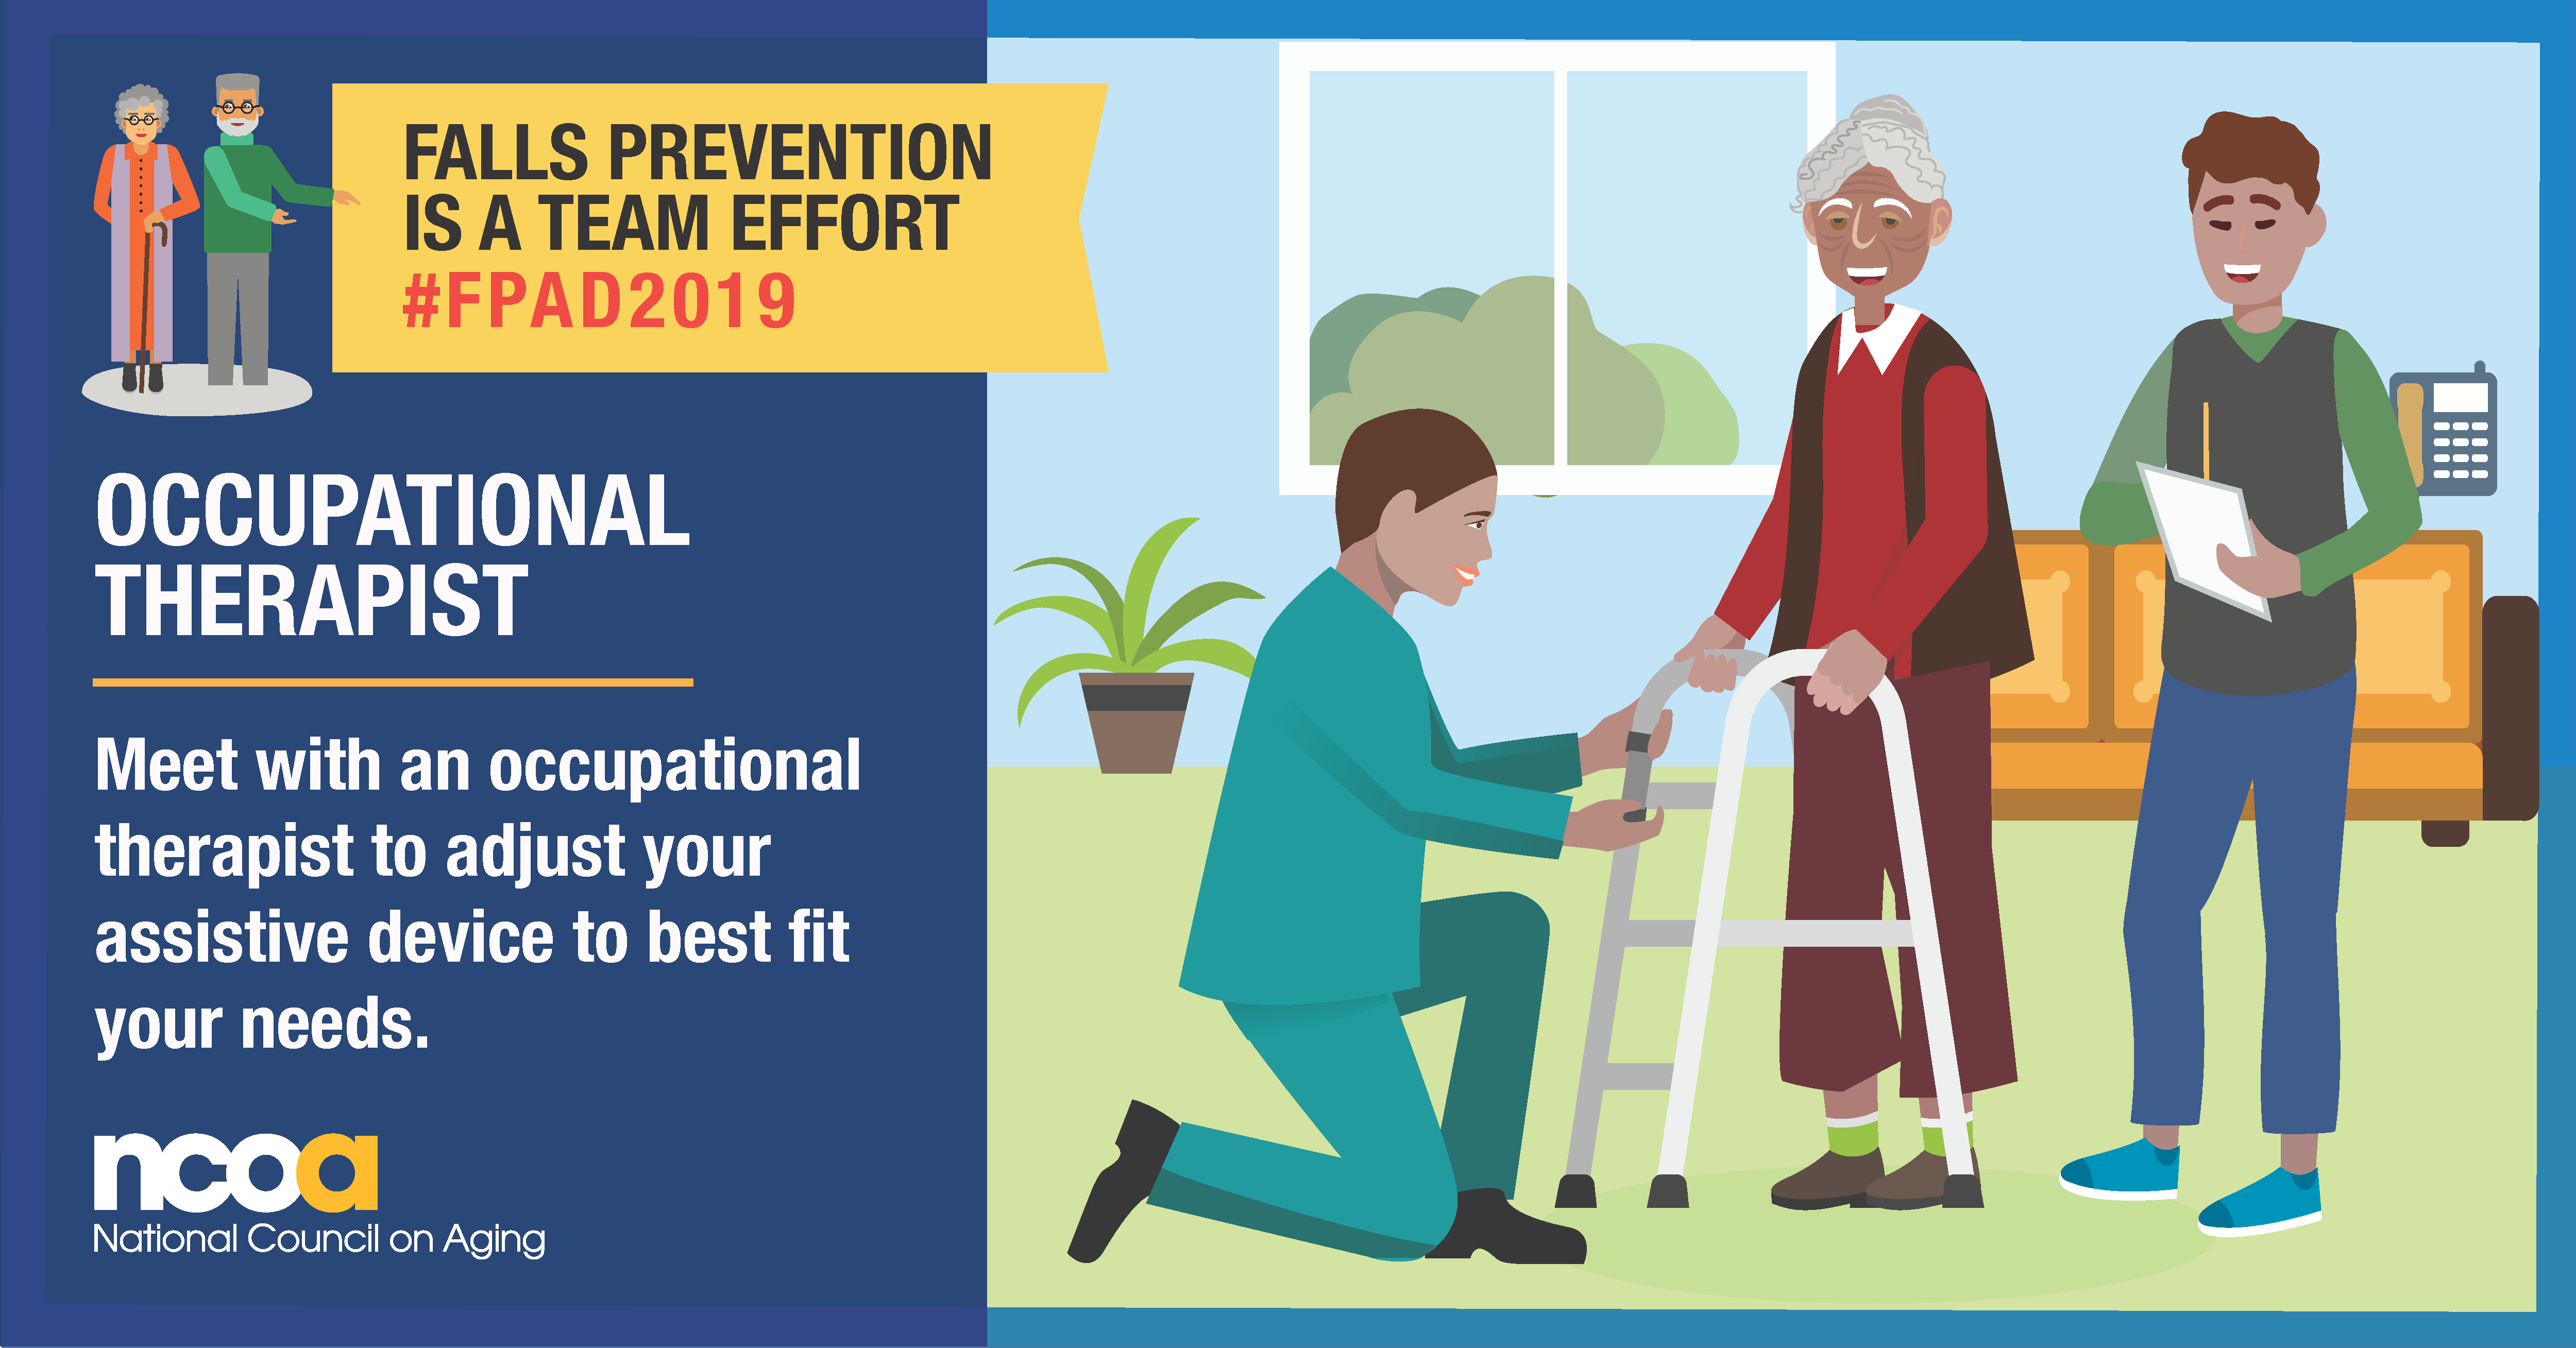 Today is Falls Prevention Awareness Day. Preventing falls